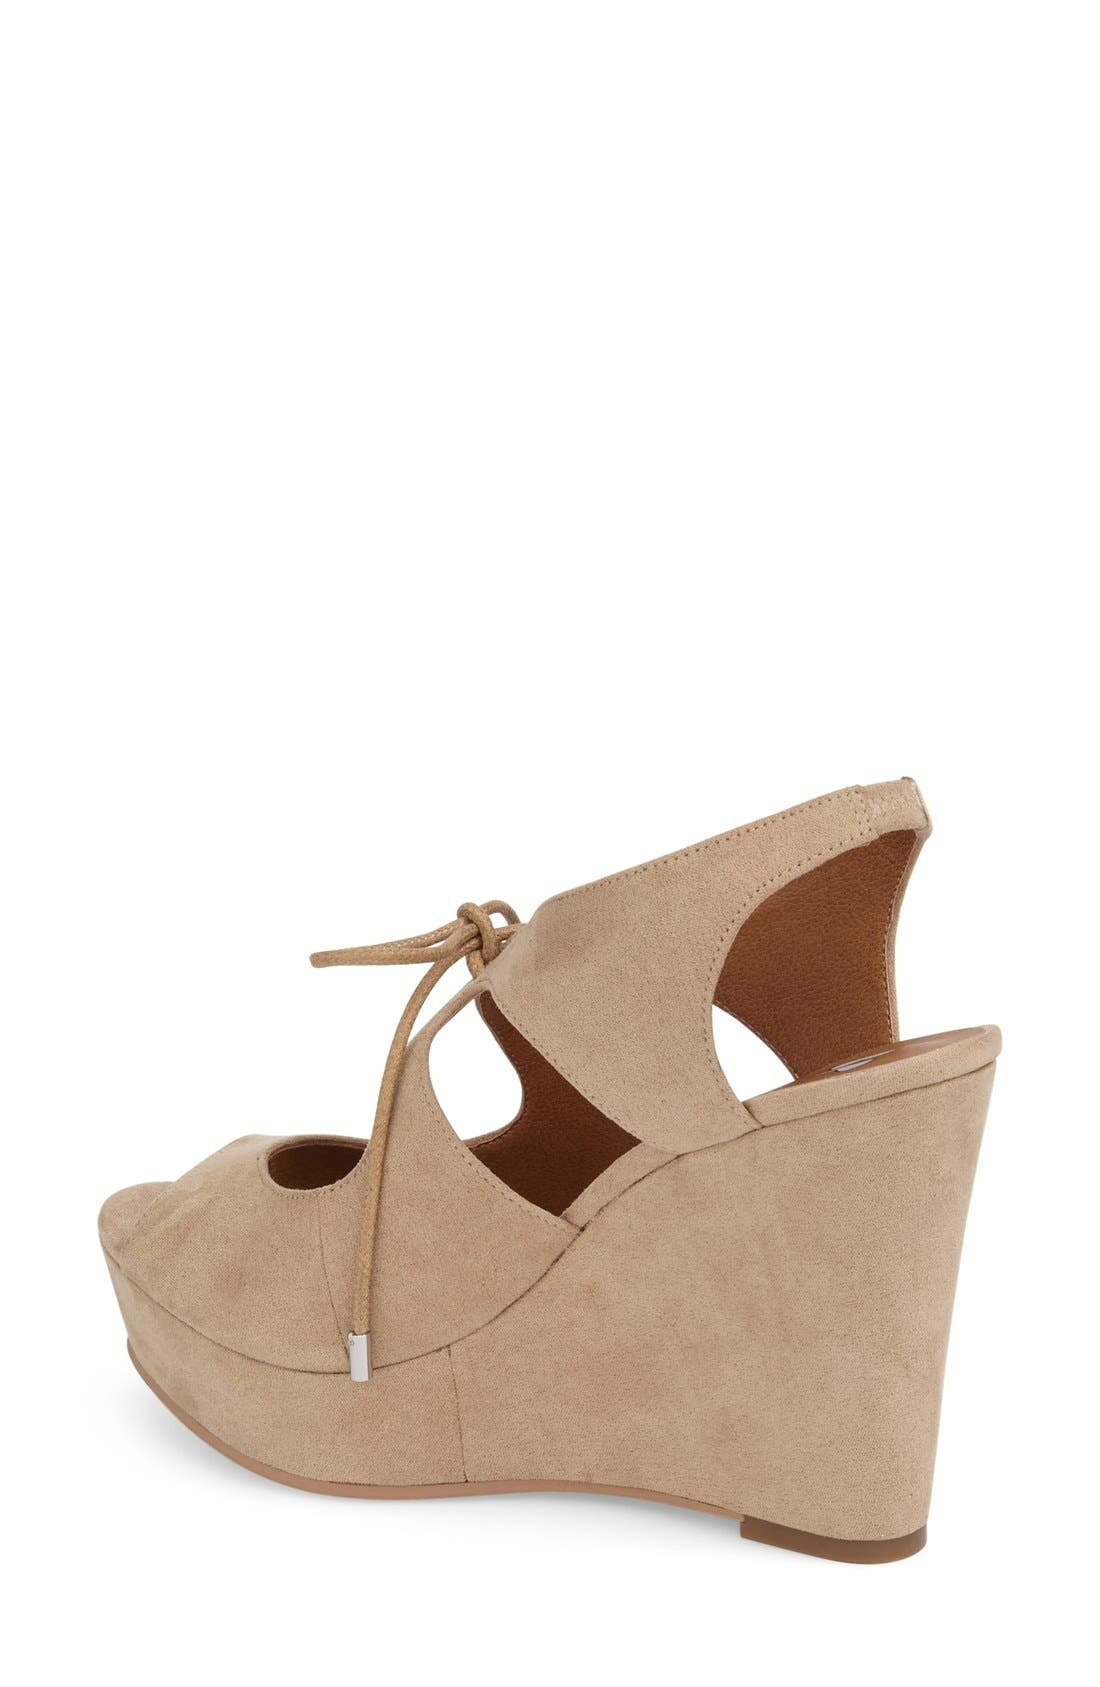 'Solar' Platform Wedge Sandal,                             Alternate thumbnail 2, color,                             Light Taupe Faux Suede